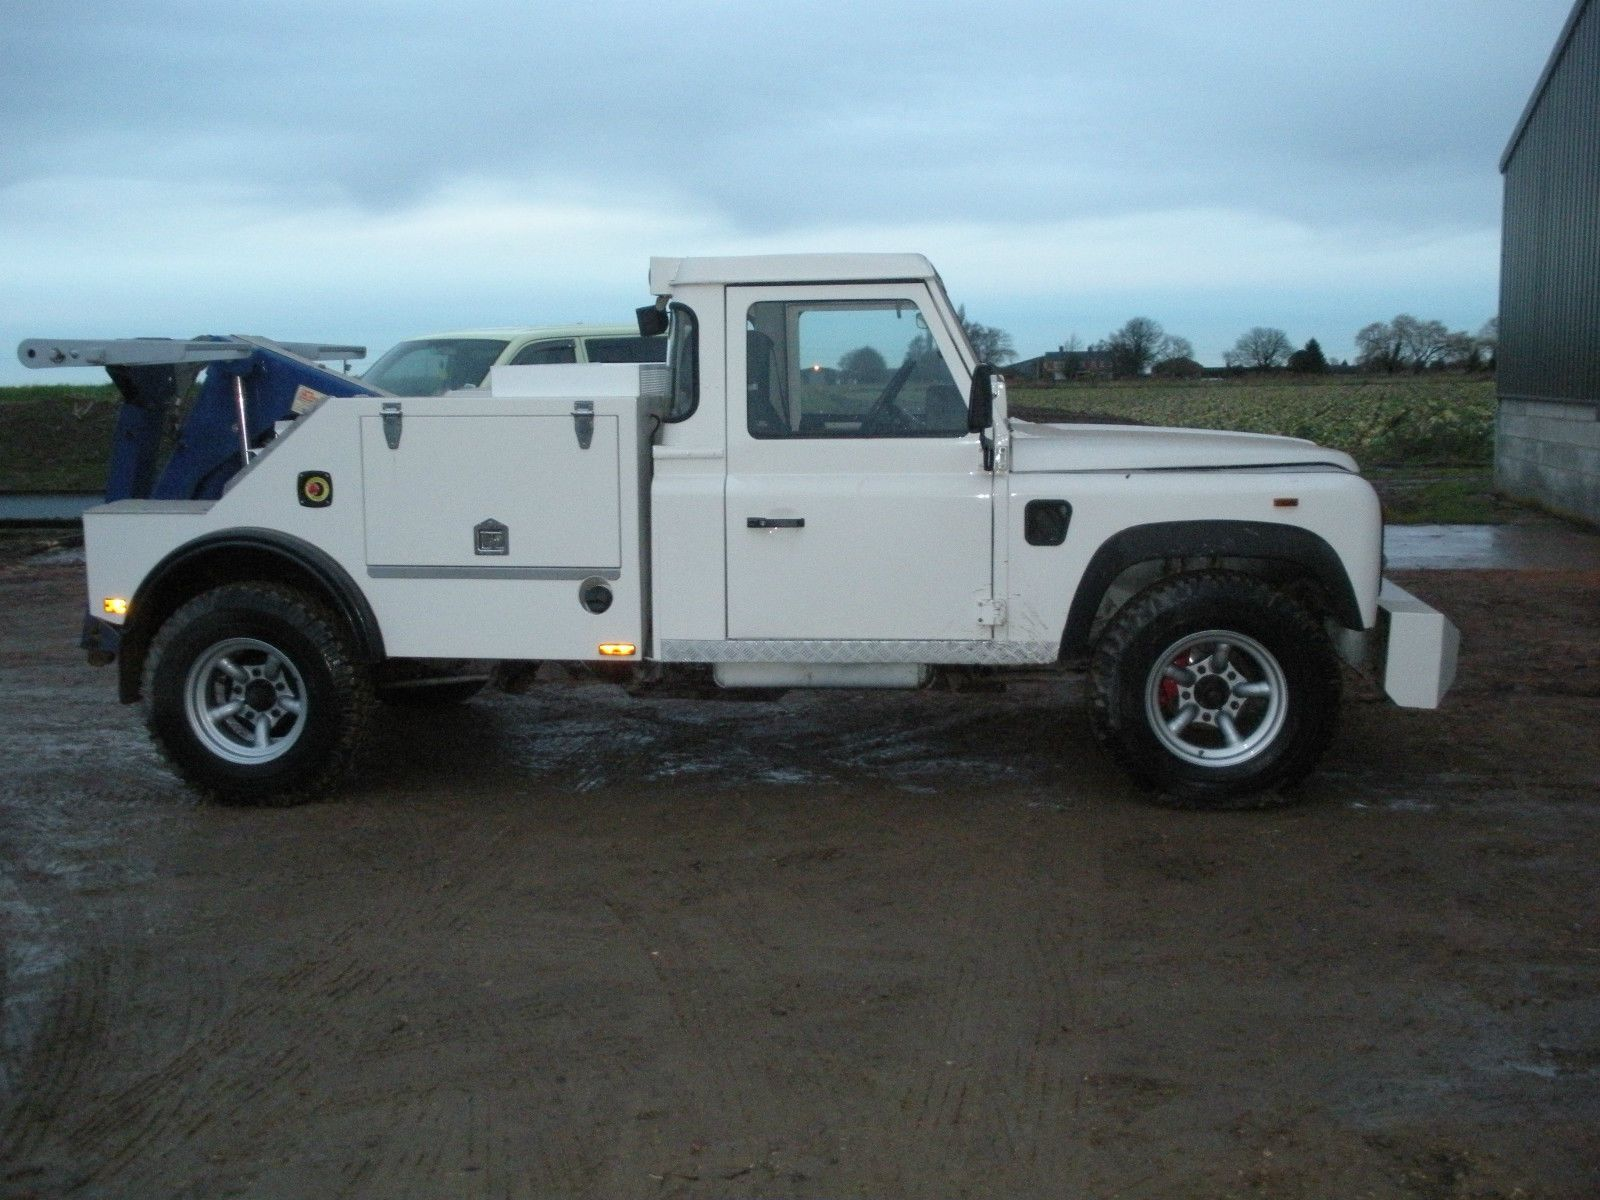 Land Rover Defender 130 Spectacle Lift Tow Truck RHD Very Rare